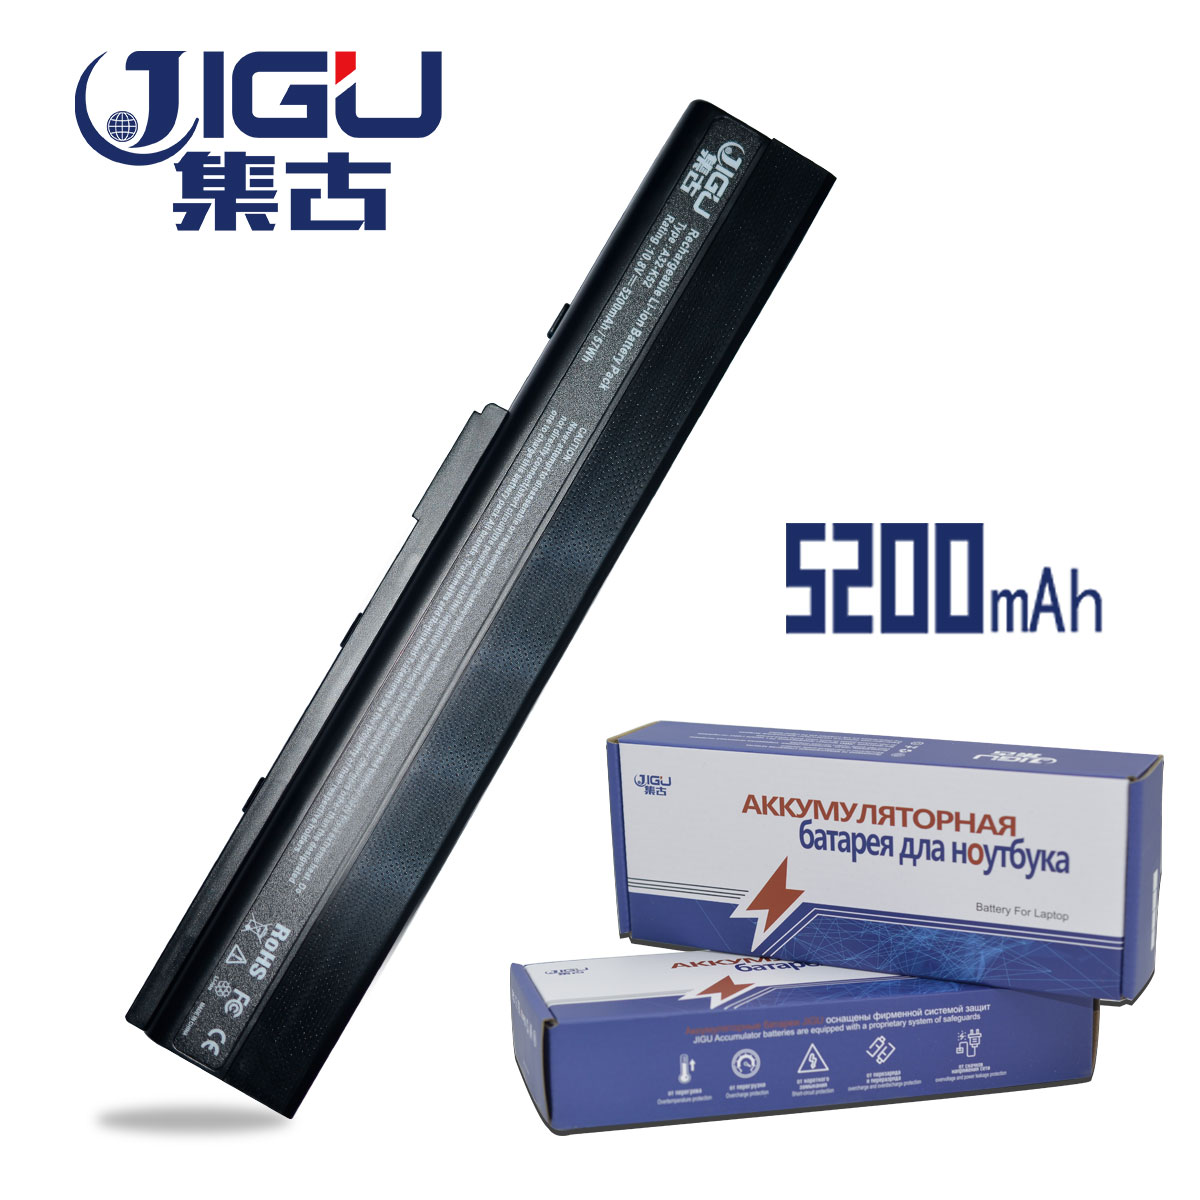 JIGU [Special Price] Laptop Battery For A52 A52J K42 K42F K52F K52J Series,70-NXM1B2200Z A31-K52 A32-K52 A41-K52 A42-K52